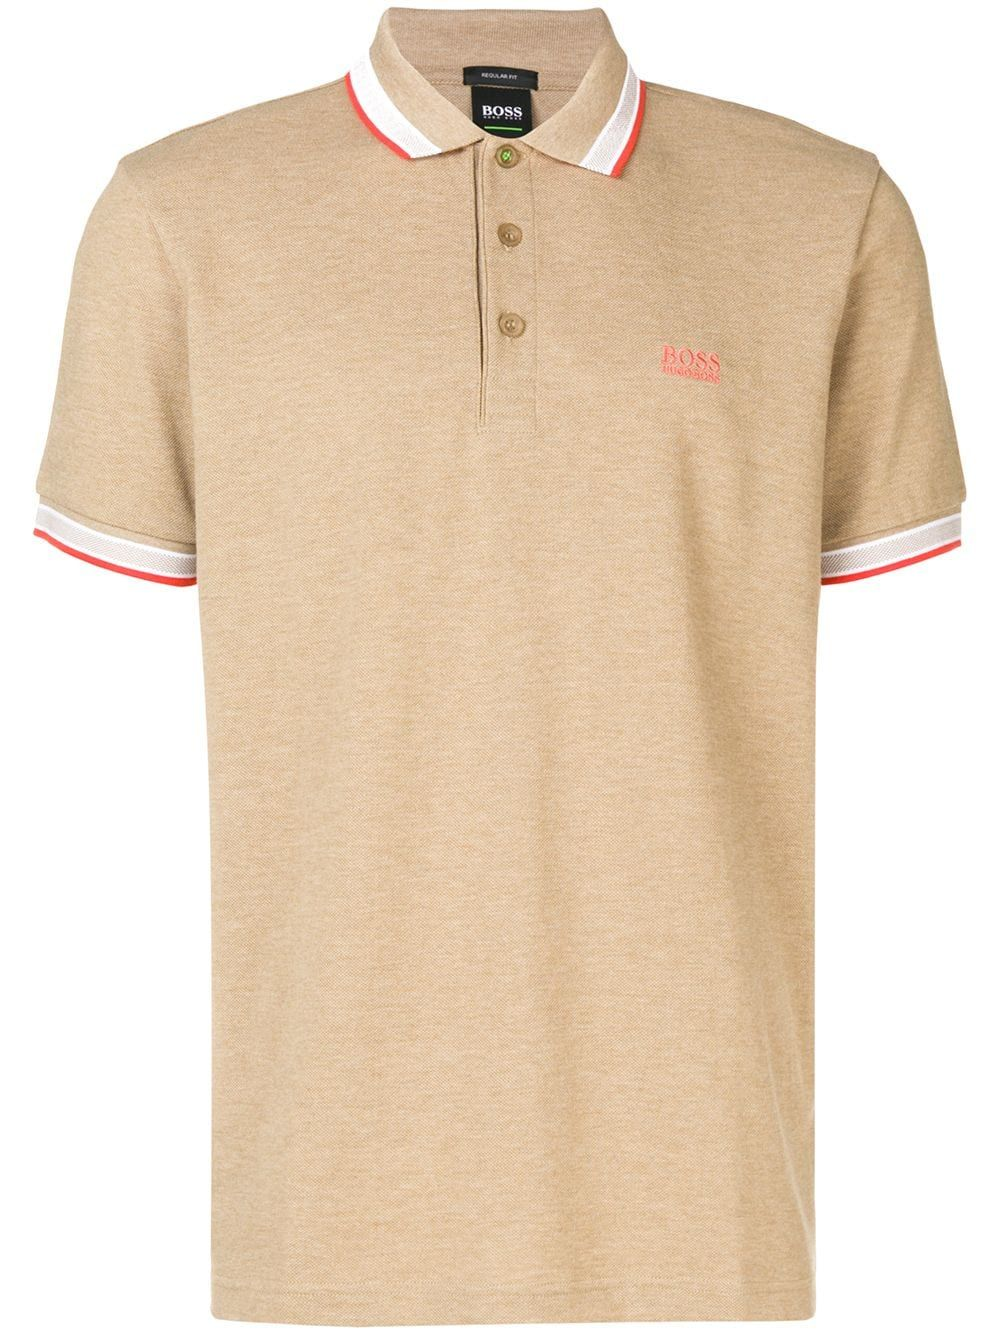 7296508ac BOSS HUGO BOSS BOSS HUGO BOSS CONTRAST TRIM POLO SHIRT - BROWN.  #bosshugoboss #cloth